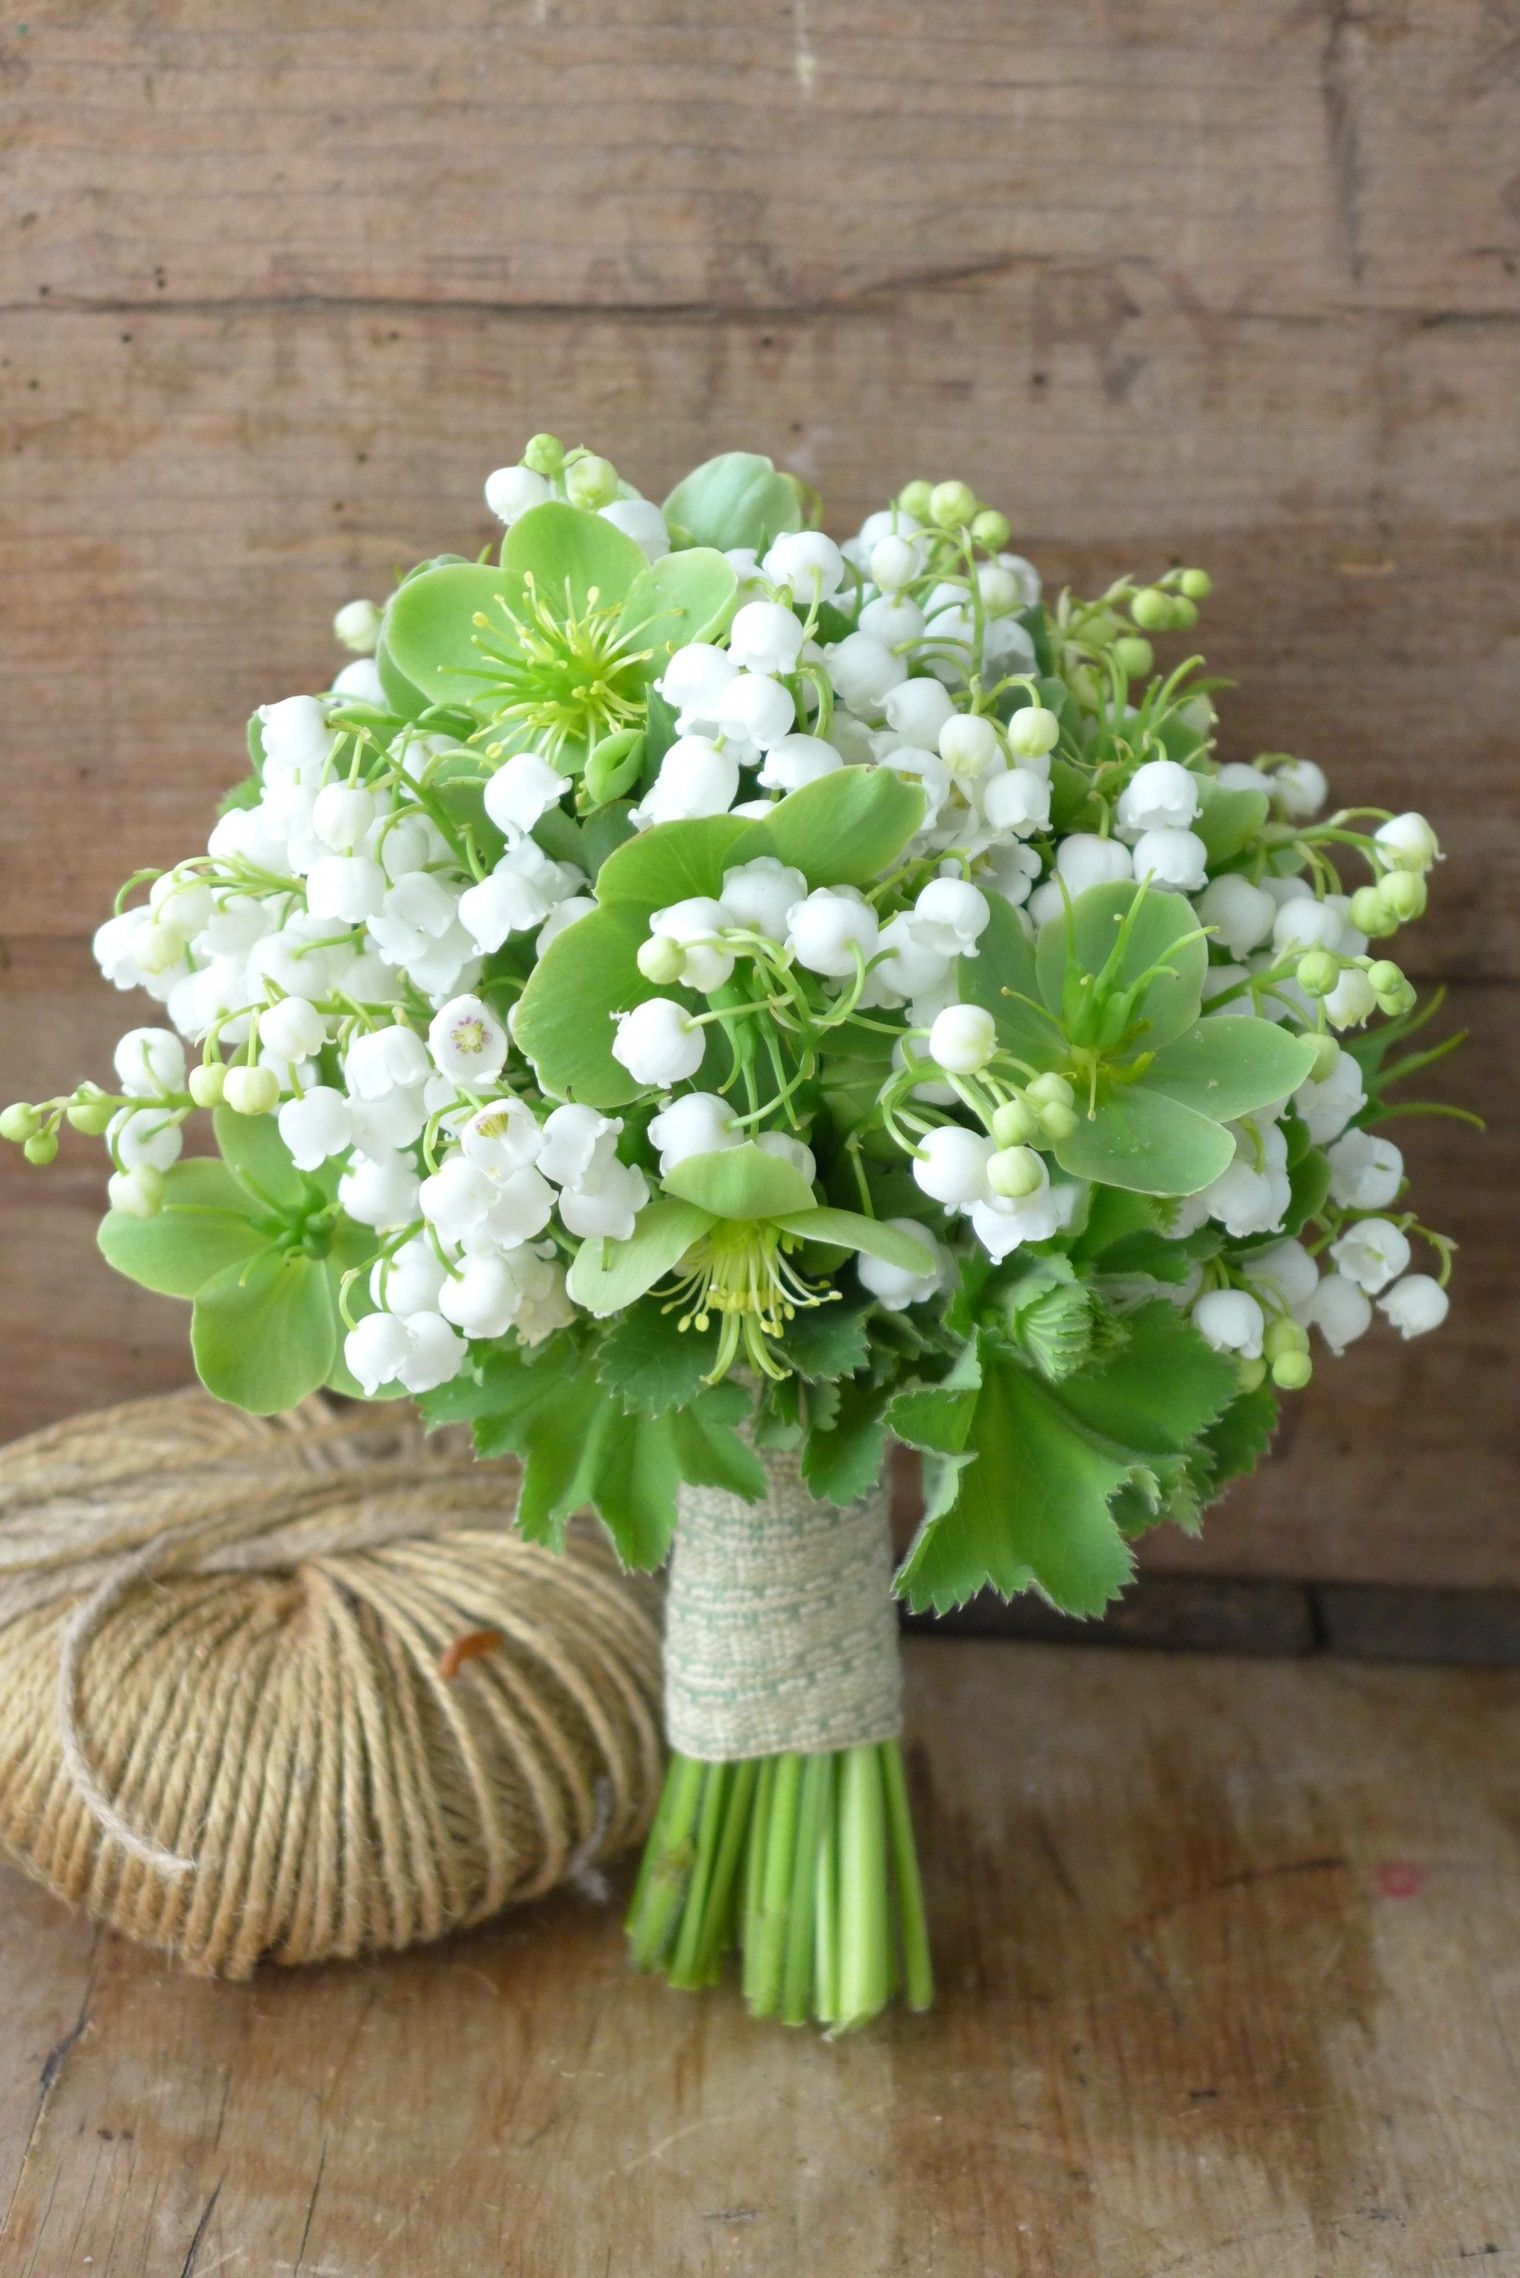 Wedding bouquet of lily of the valley hellebore alchemical lily of the valley with delicate stems of tiny white flowers and beautifully perfumed one of the most expensive flowers to use in a wedding bouquet dhlflorist Choice Image